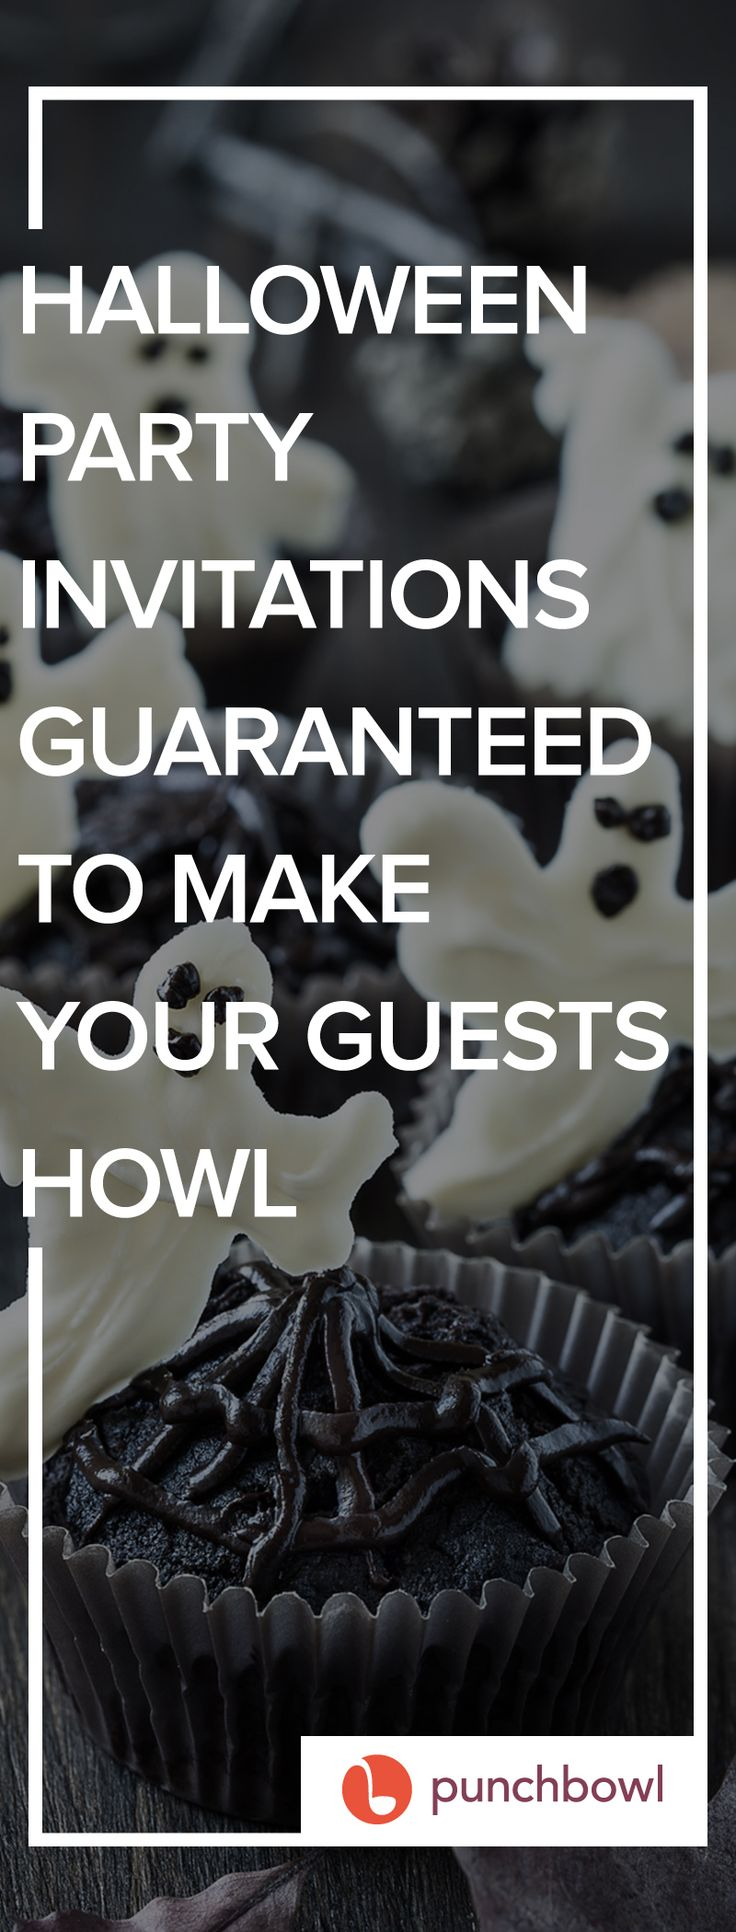 Paper invites are too formal, and emails are too casual. Get it just right with online invitations from Punchbowl. We've got everything you need for your Halloween party.    https://www.punchbowl.com/online-invitations/category/23?utm_source=Pinterest&utm_medium=56.1P